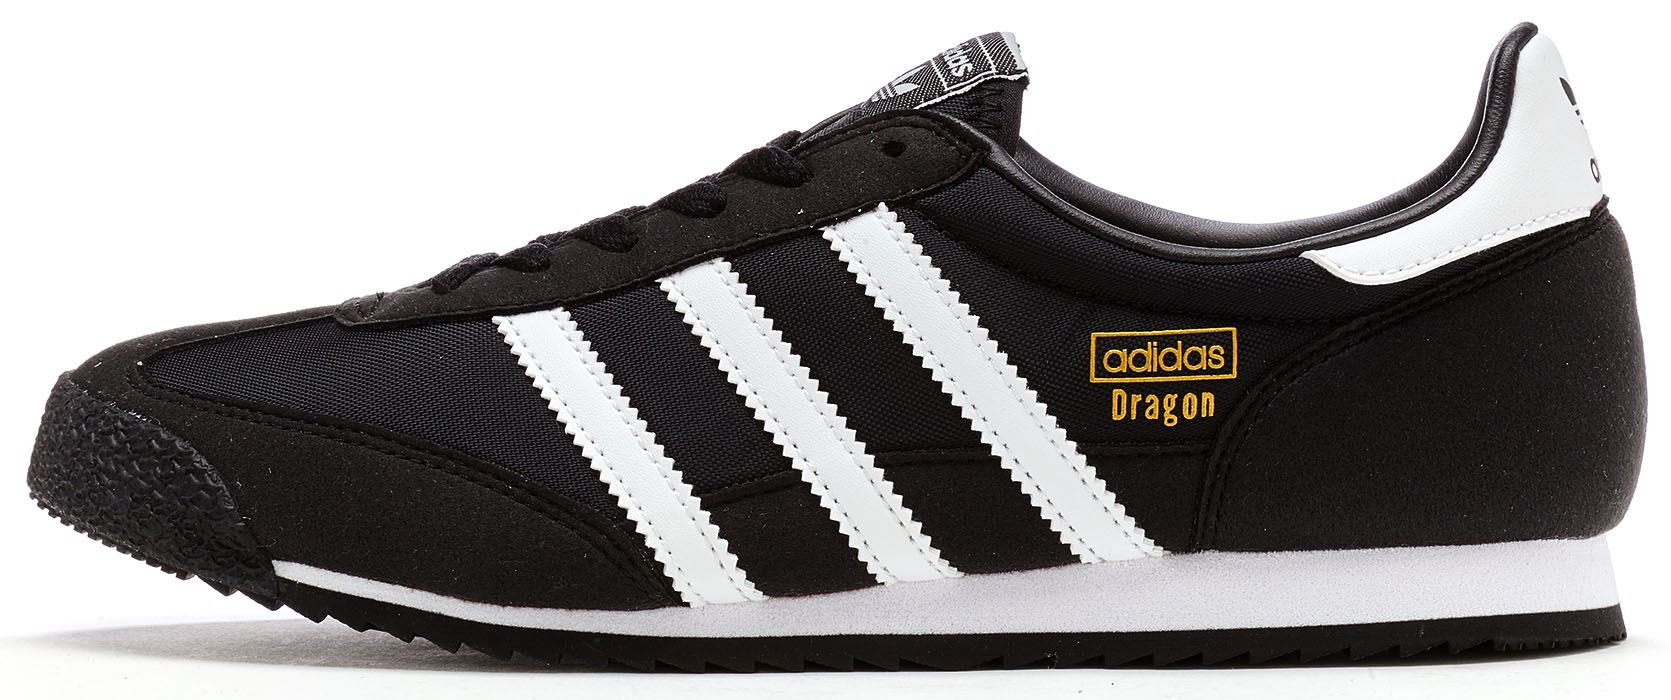 separation shoes f2abd b7260 Adidas Originals GS Dragon OG Suede Trainers in Black BB2487